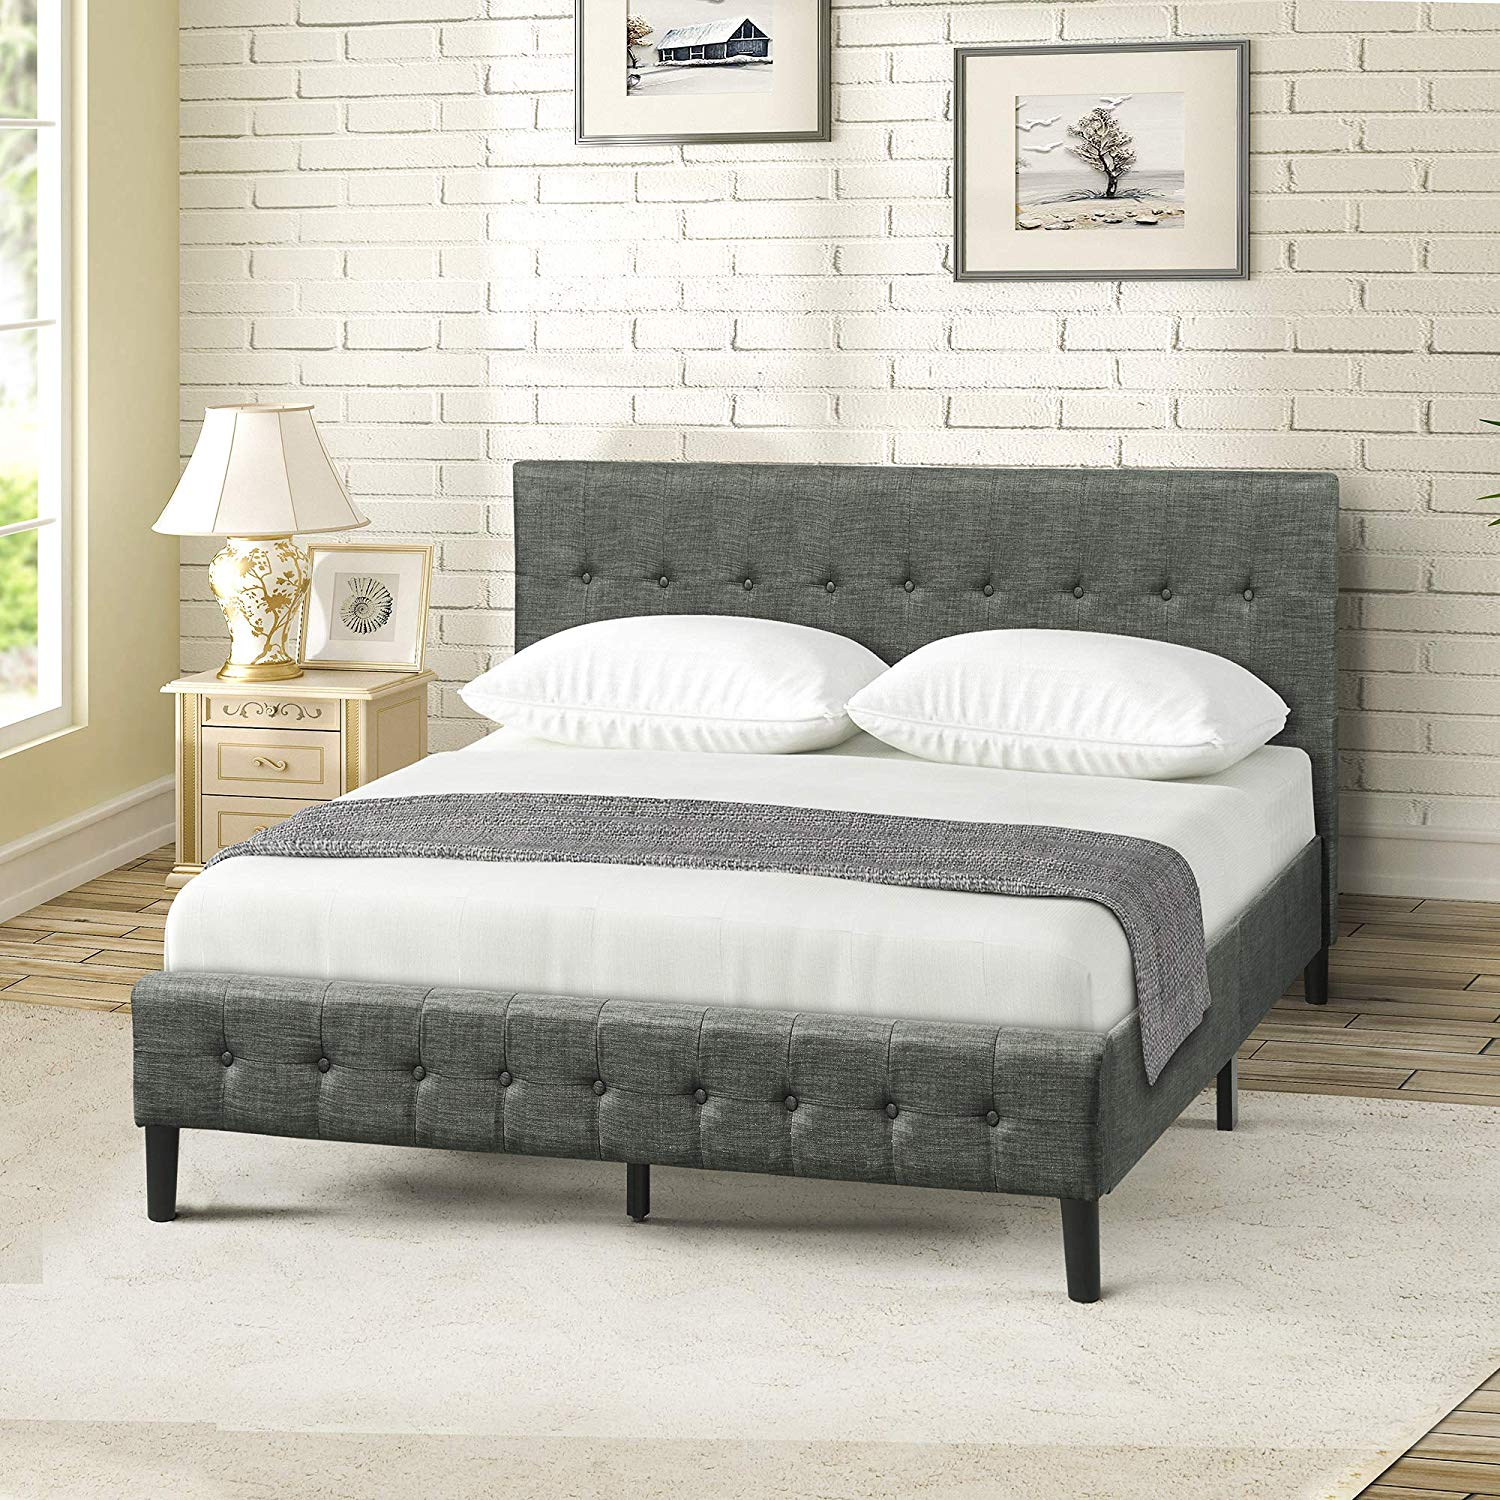 Upholstered Platform Bed Wooden Slat Support Tufted Headboard Footboard (Queen)